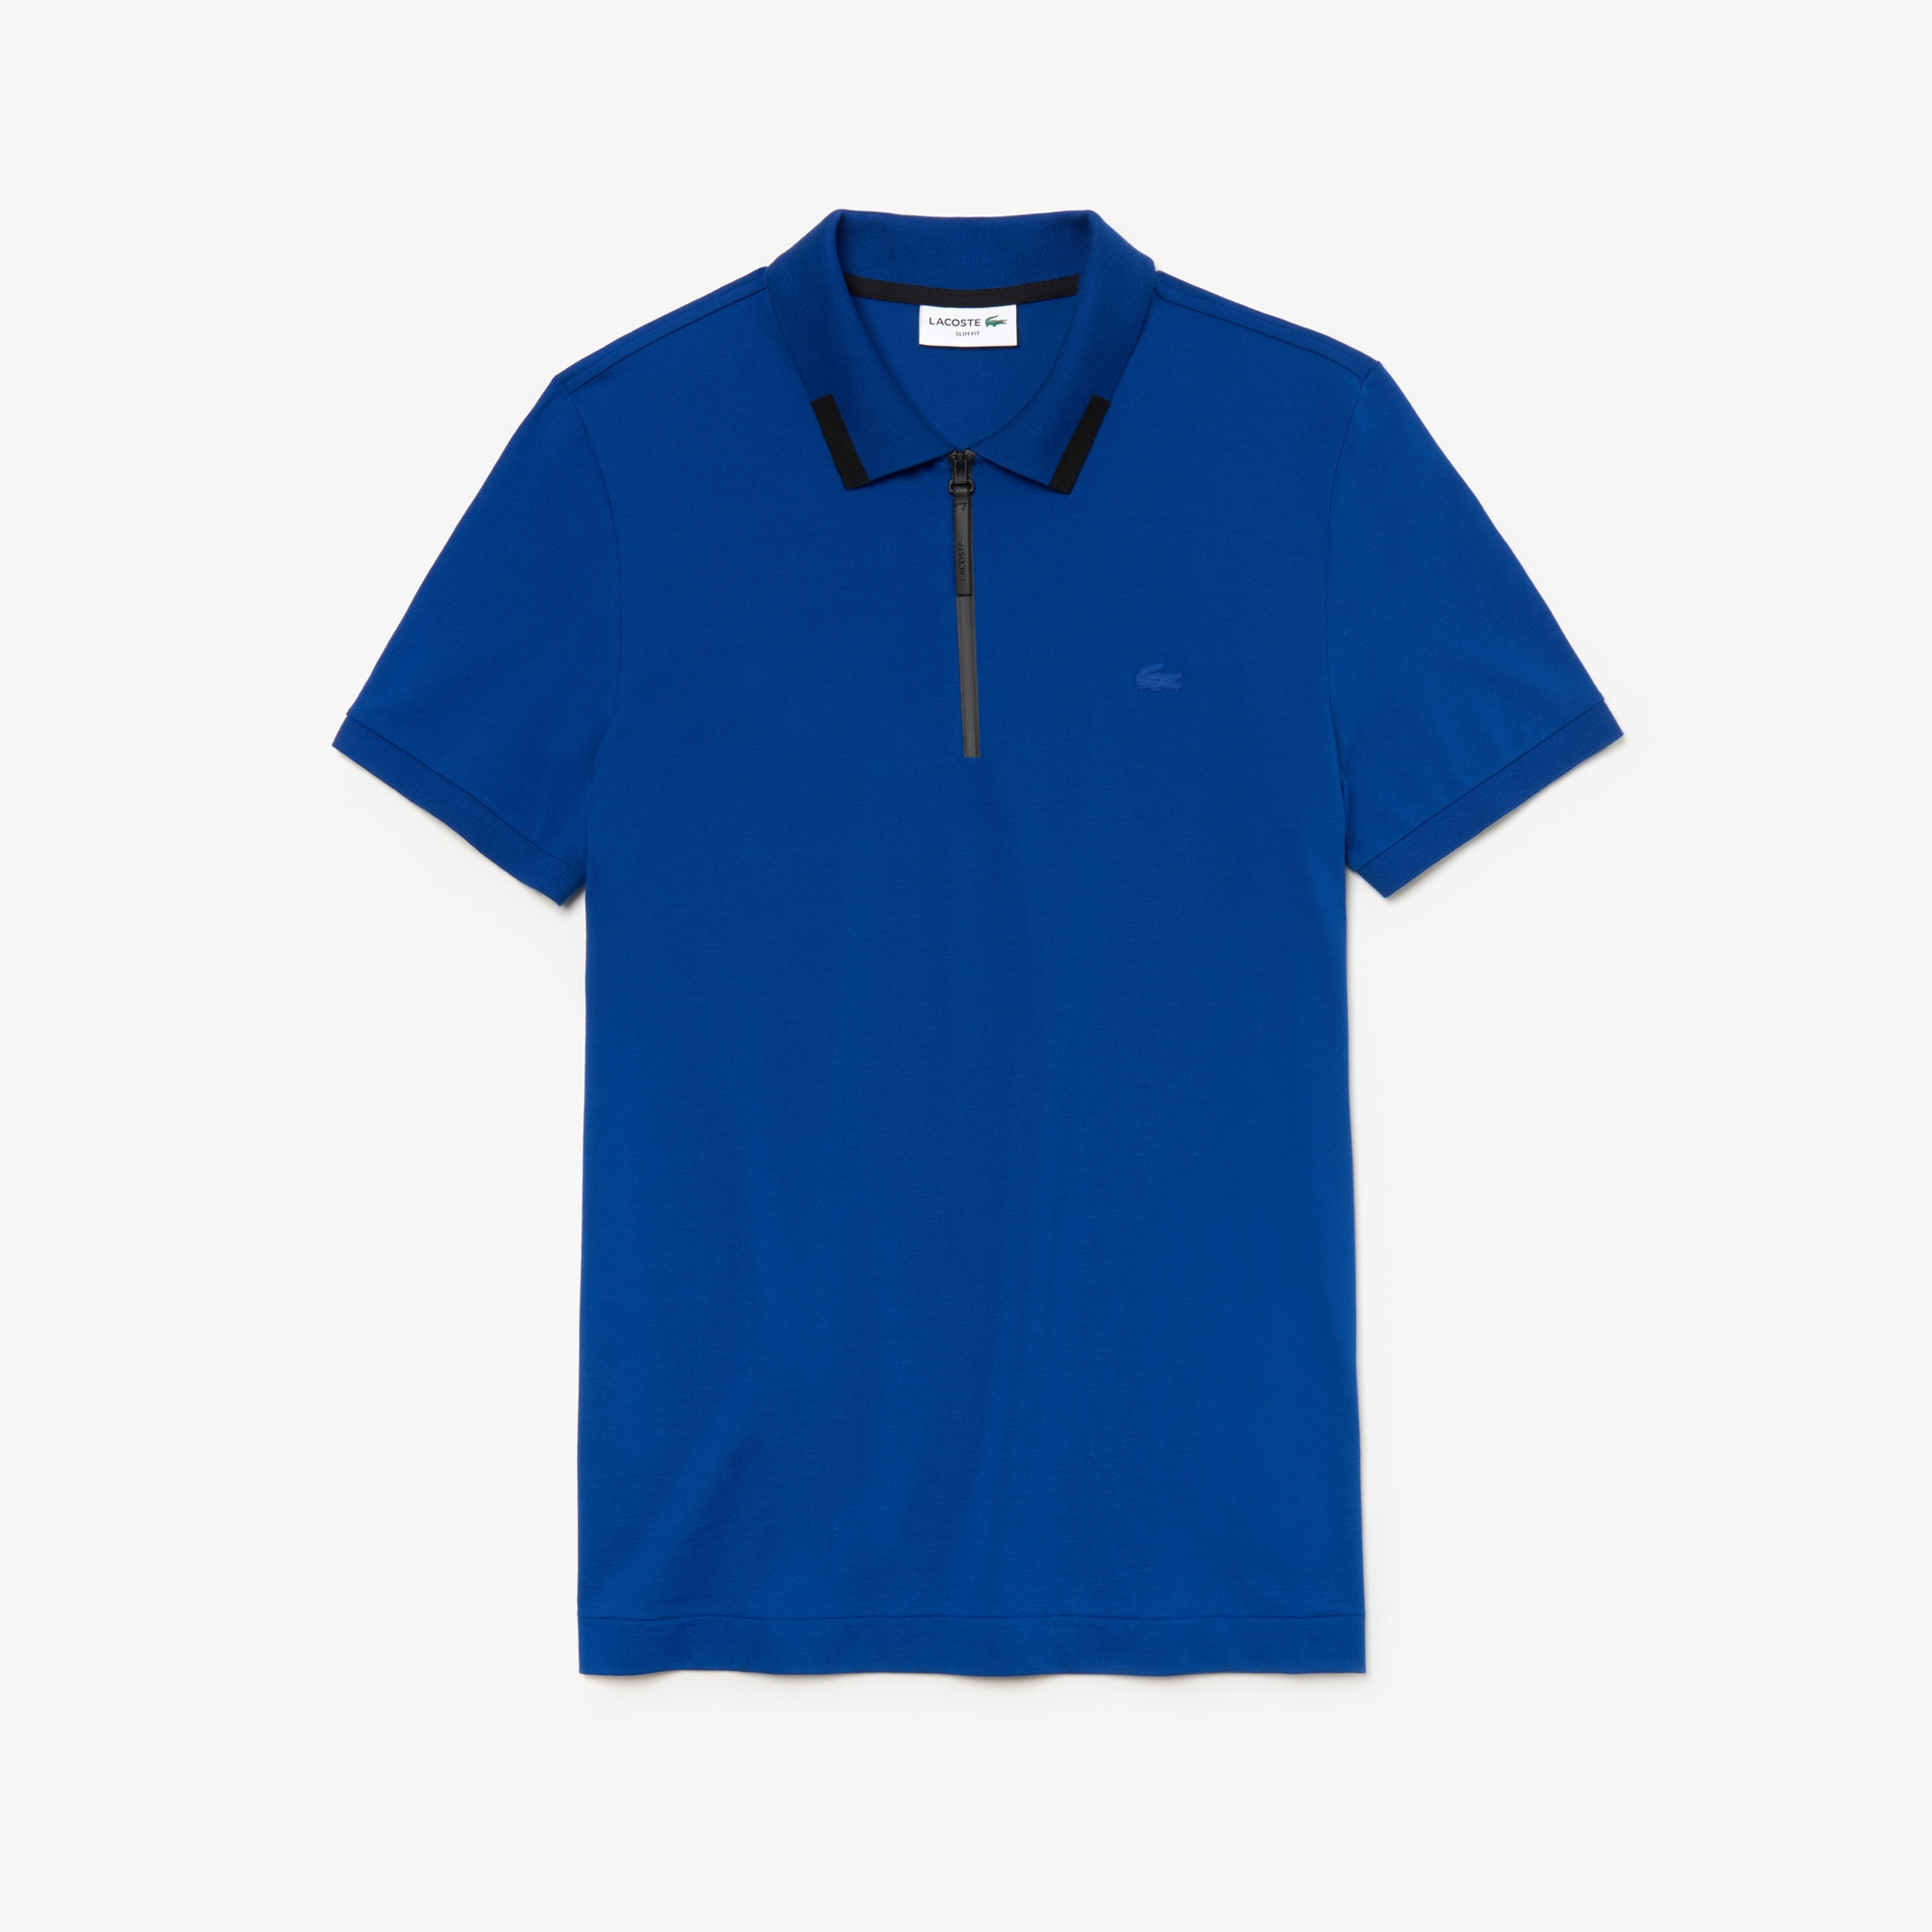 Men's Lacoste Motion Cotton Piqué Polo